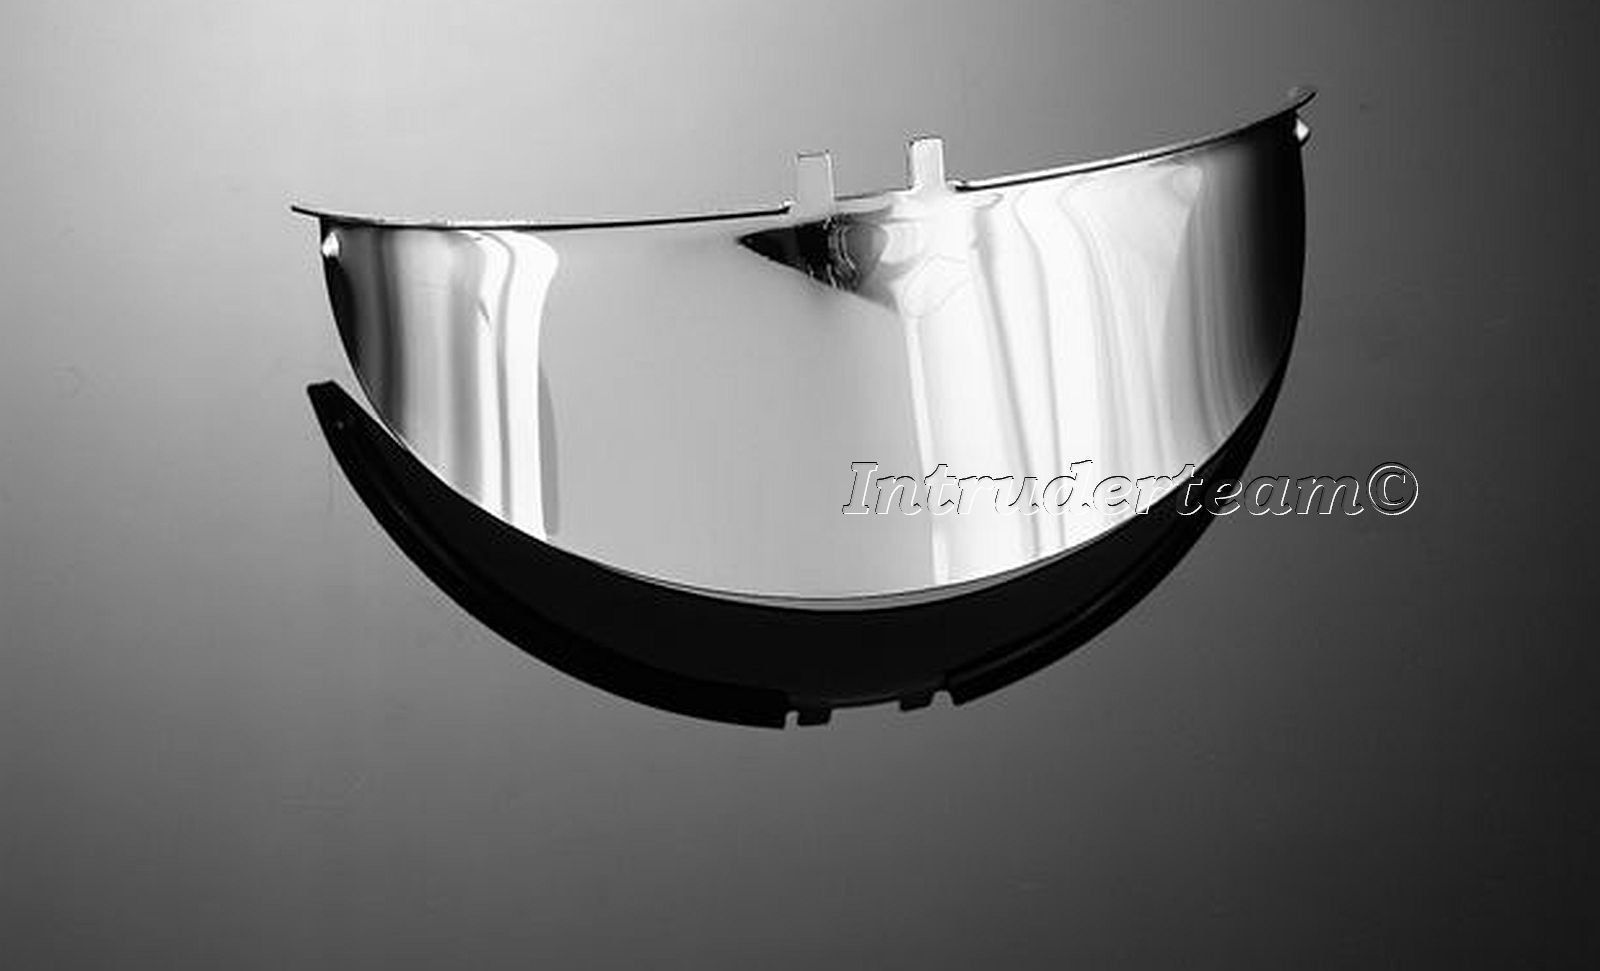 Scheinwerfer Schirm Headlight visor Medium for Ø 140mm (5 1/2inch) headlights